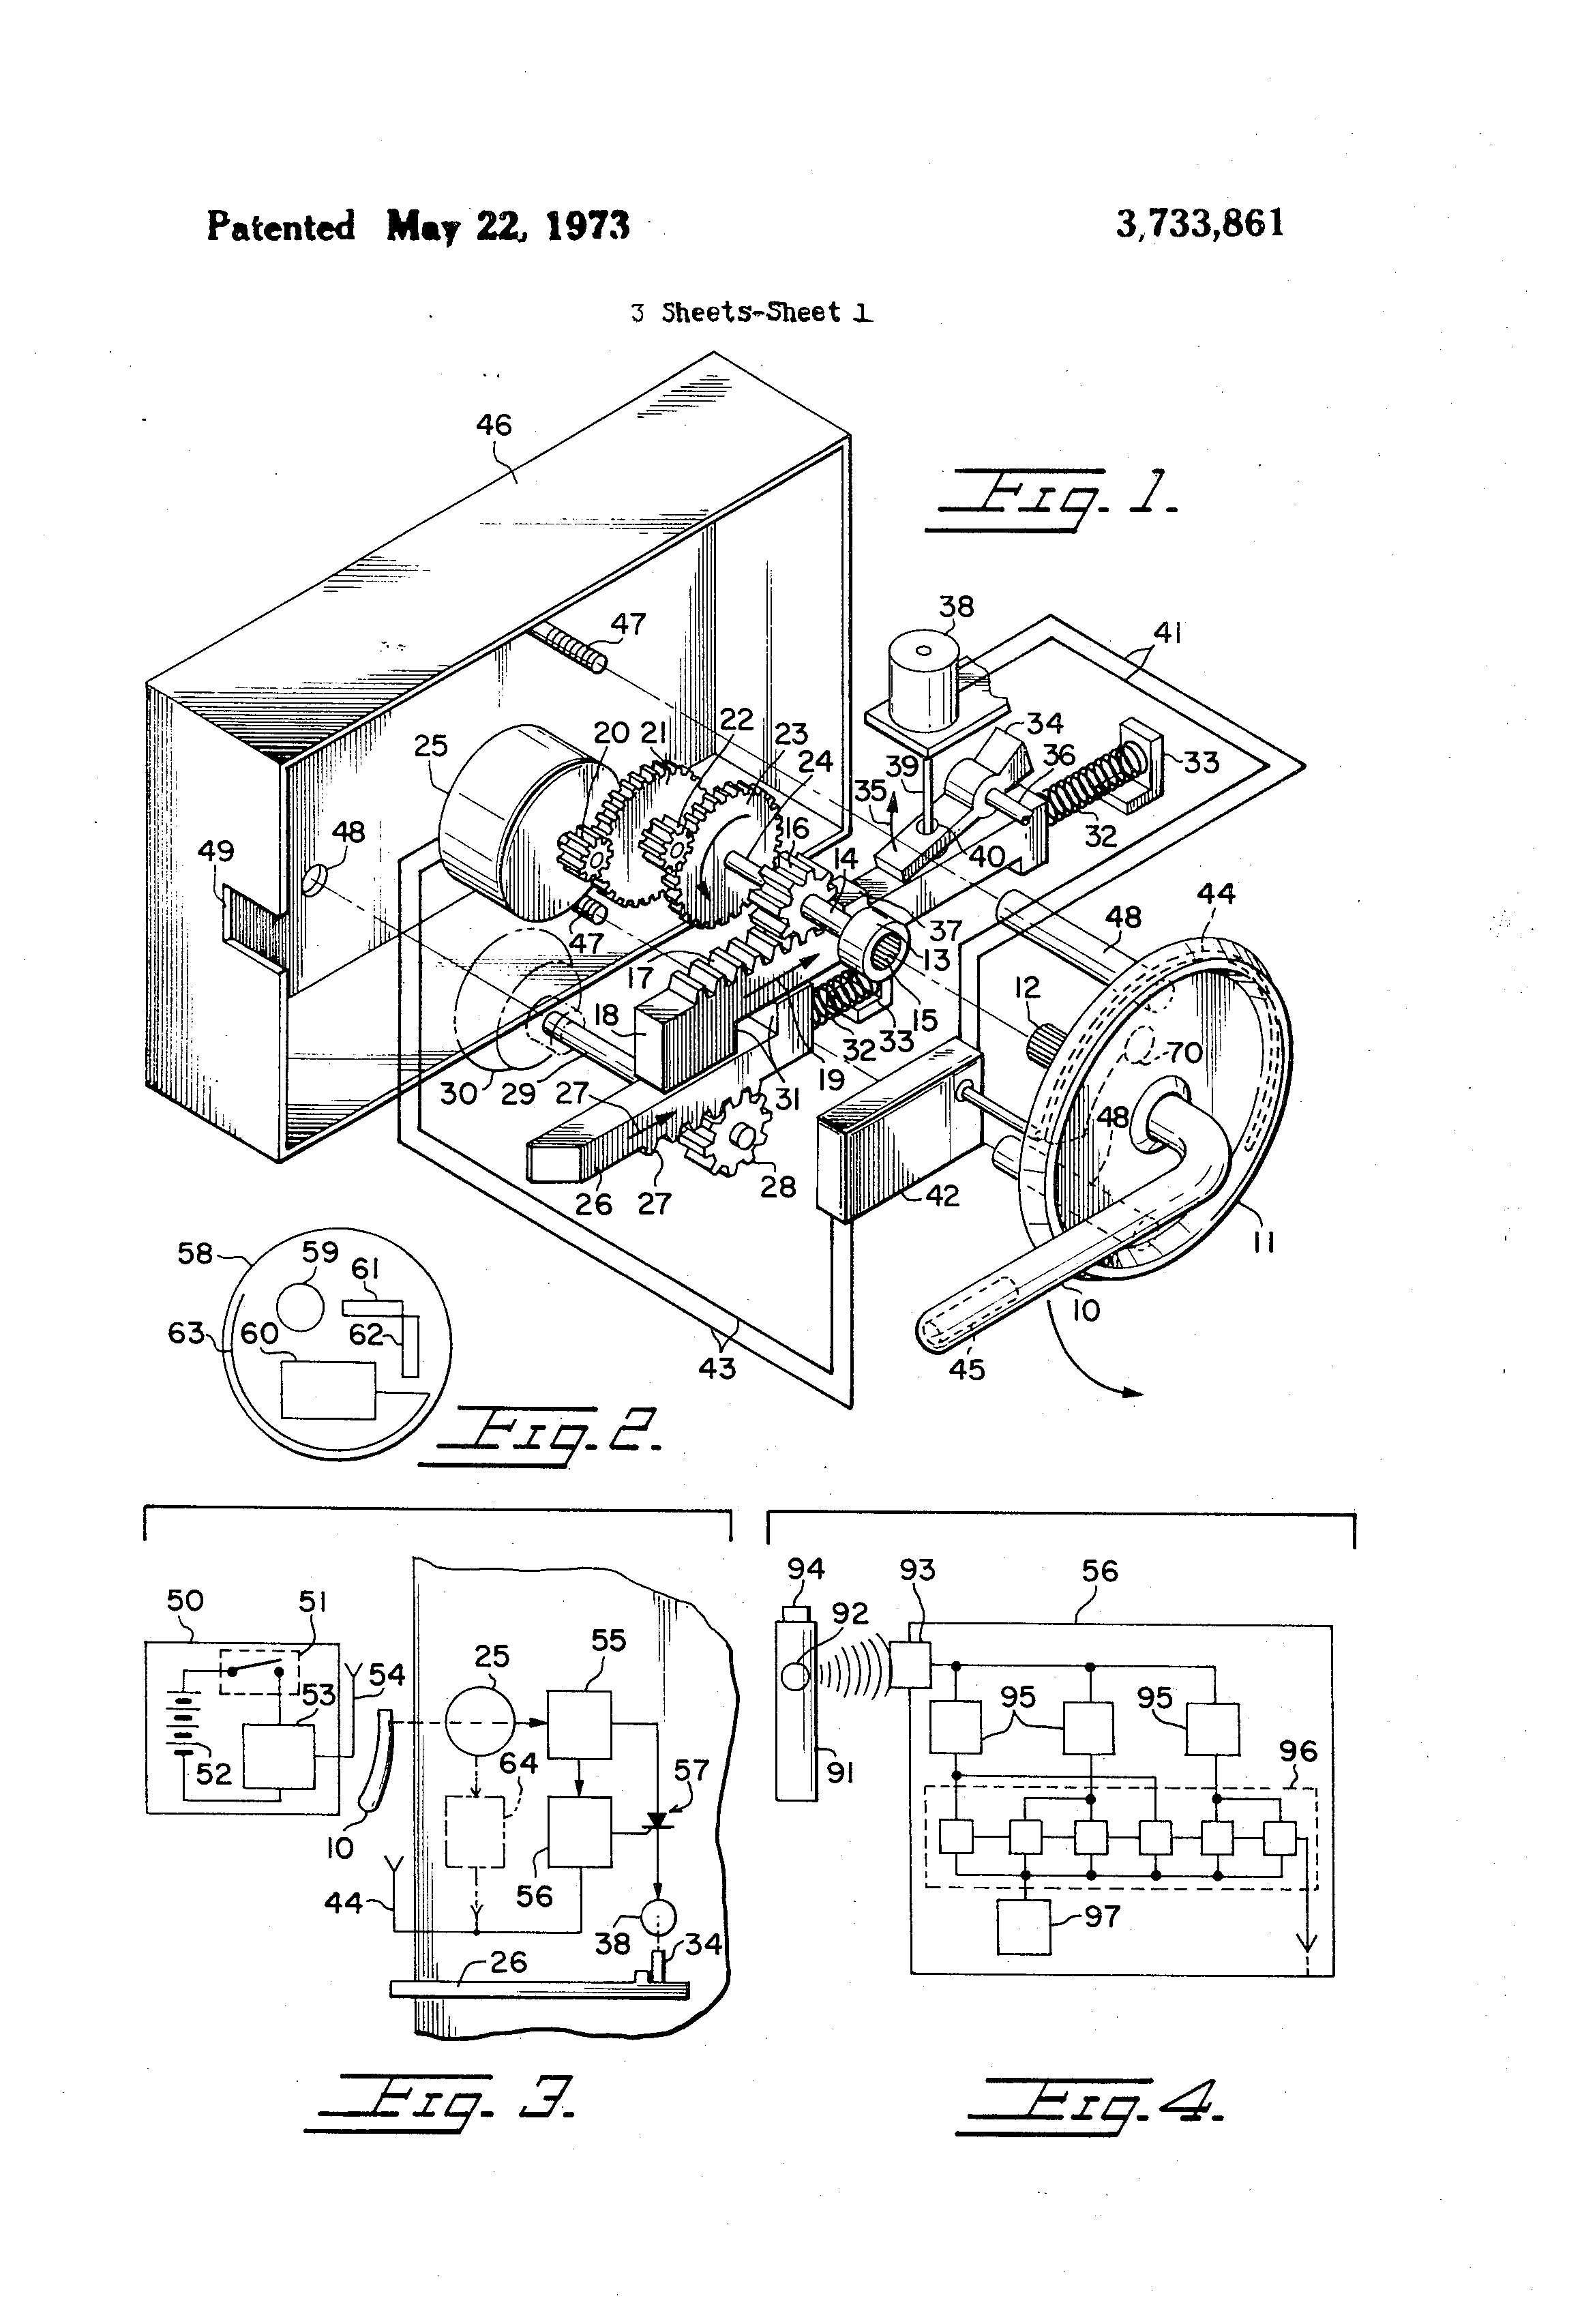 Schlage Maglock Wiring Diagram Thoughtexpansionnet Lincoln Welder Diagrams By Sargent Locks Patent Us3733861 Electronic Recognition Door Lock Google Patents 1 Us3733861eitxcrt5fpls7aiql7wrmeag